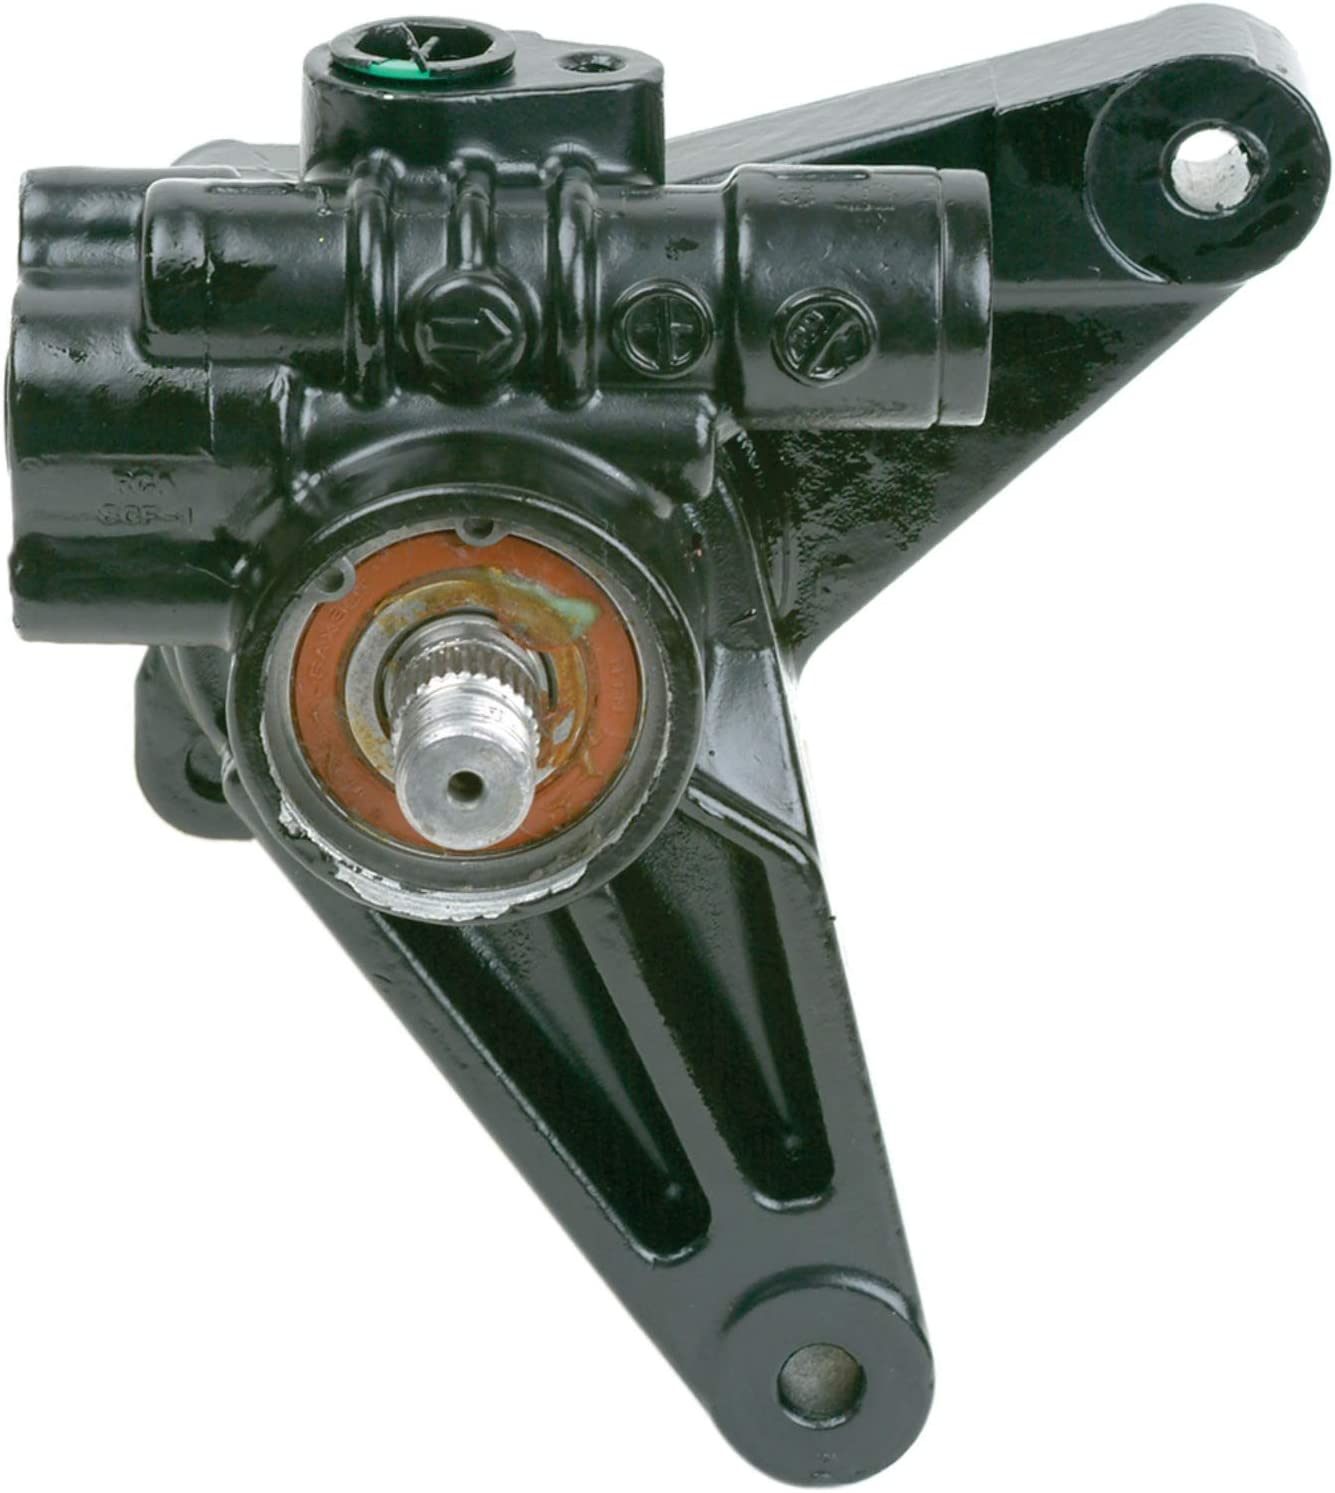 Cardone 21-5349 Remanufactured Power SALENEW very popular without Steering Super special price Pump Reser